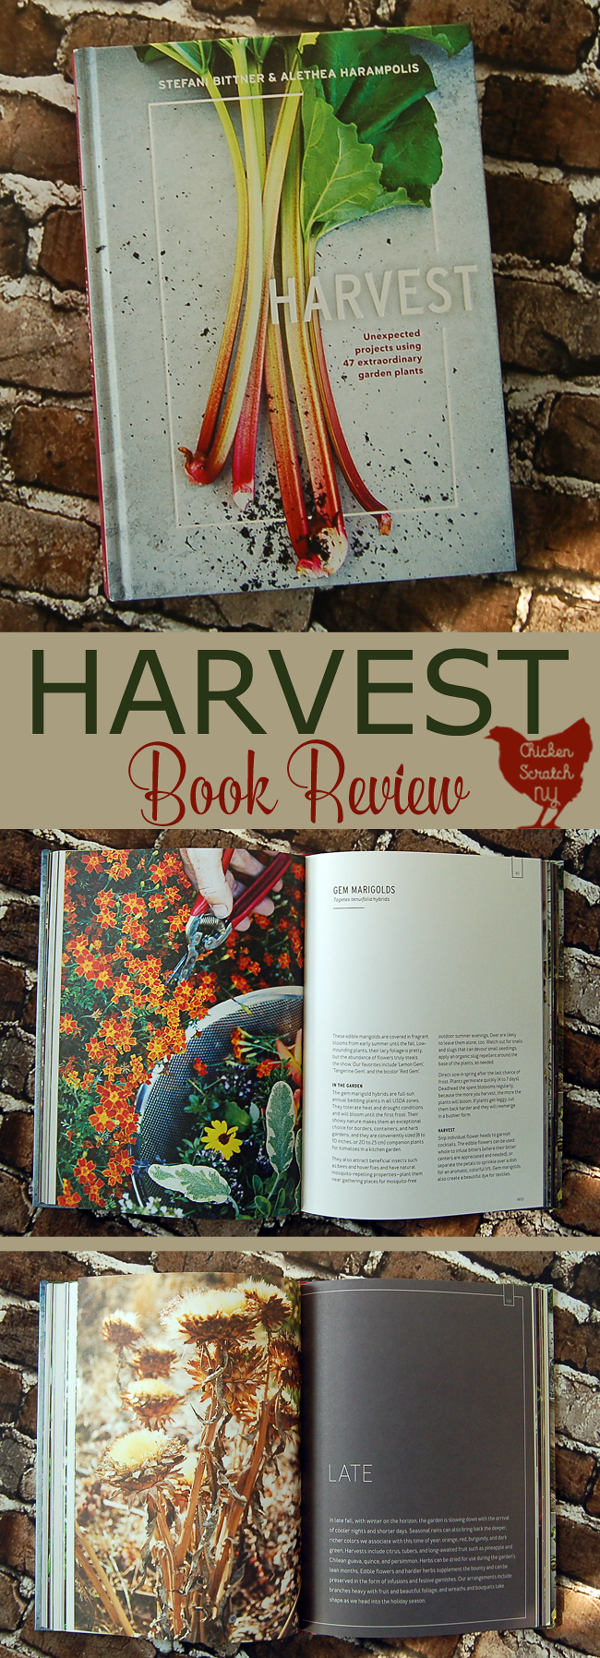 Harvest Book Review